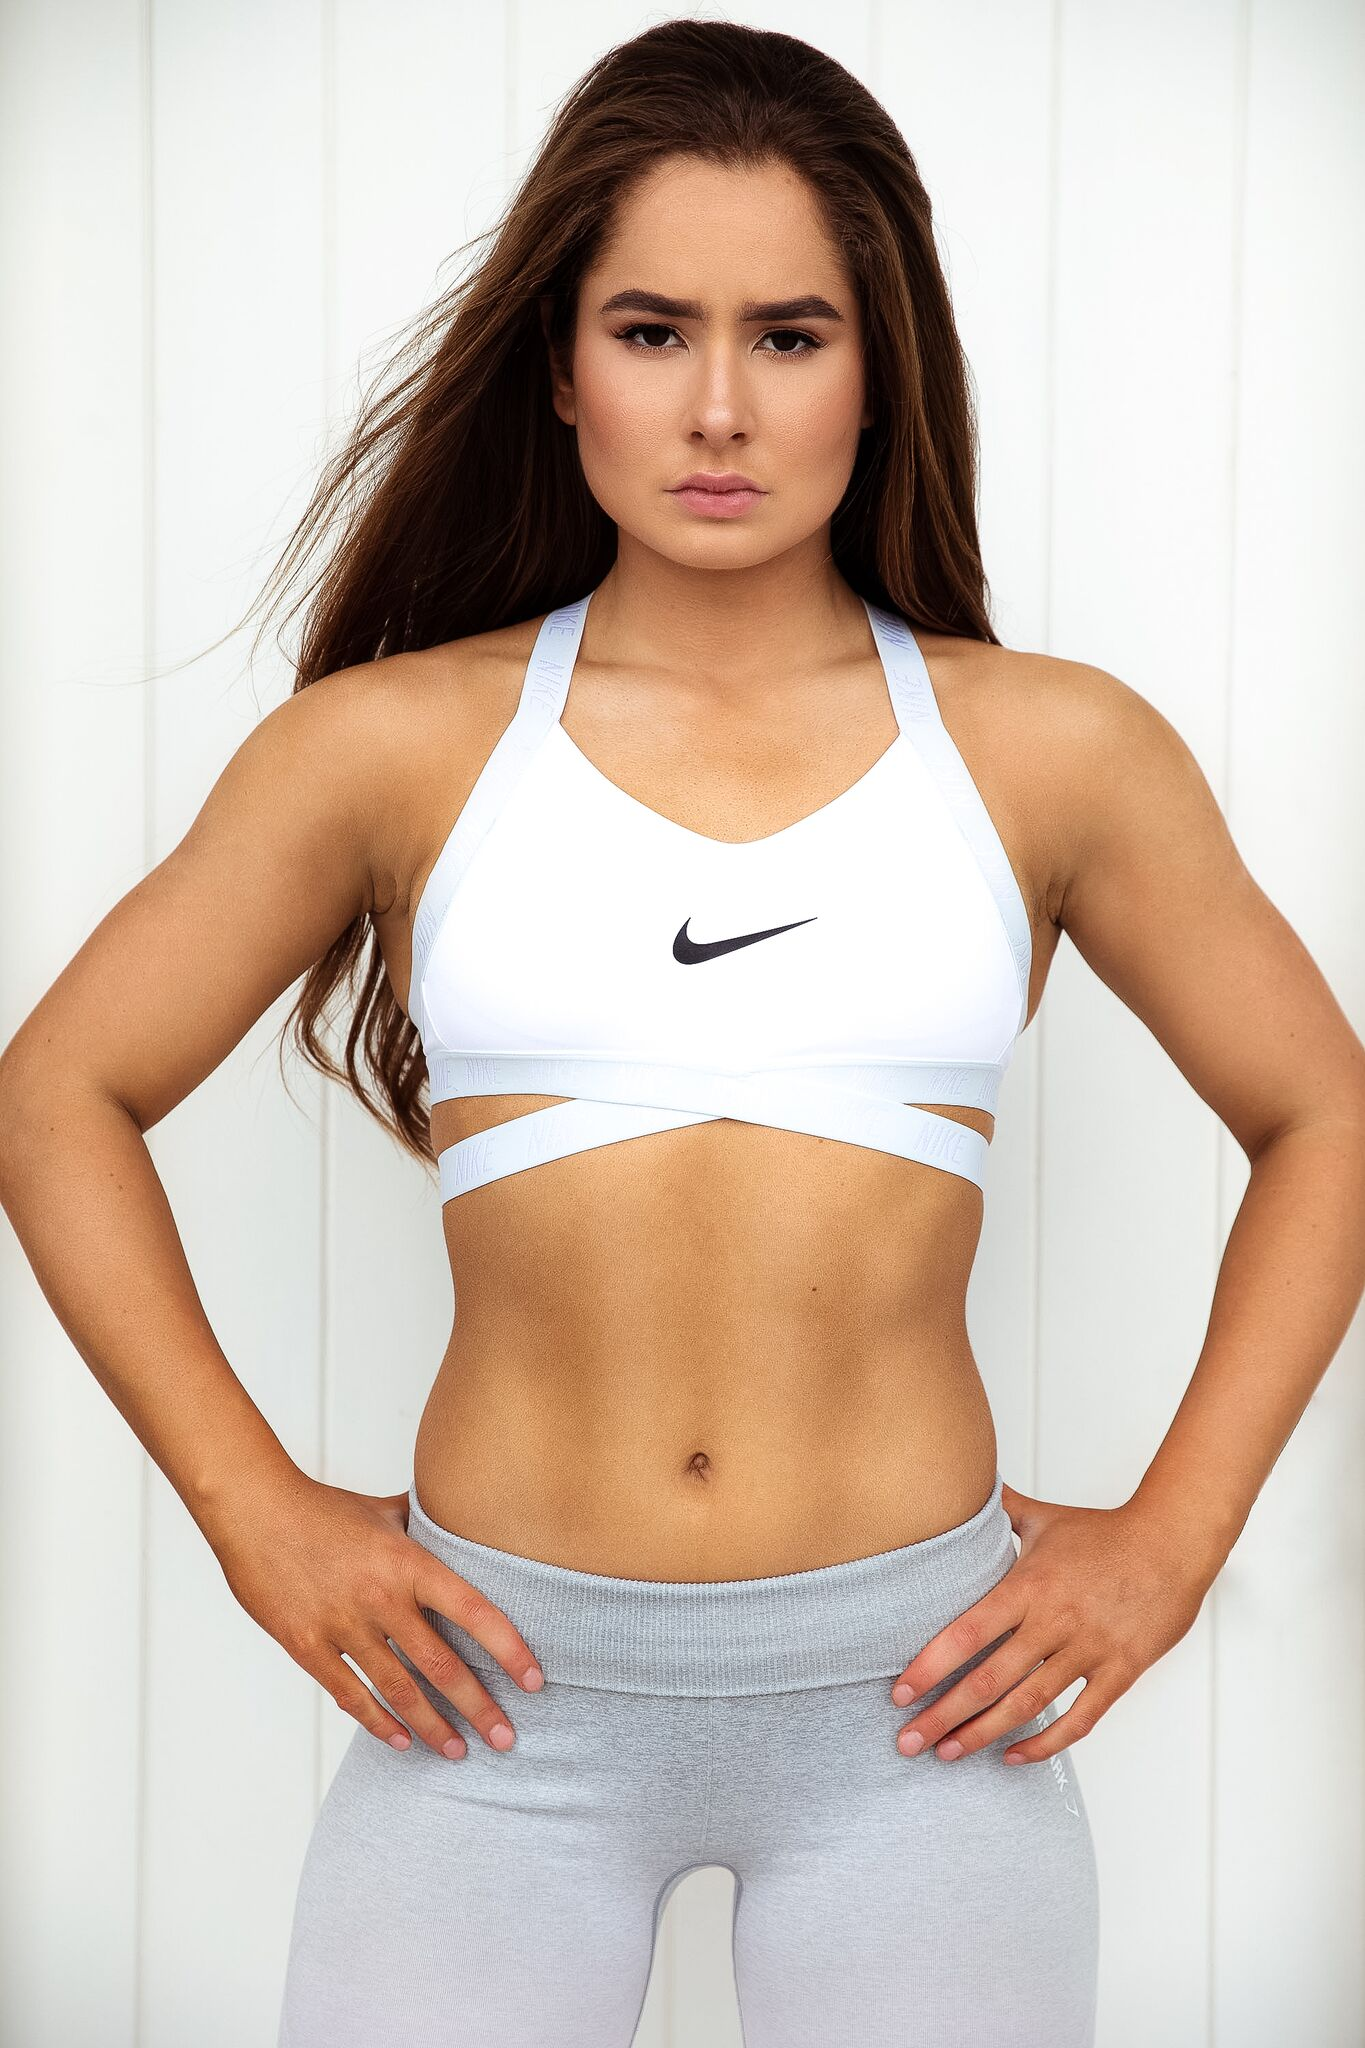 Emily V posing strong in her Nike crop top